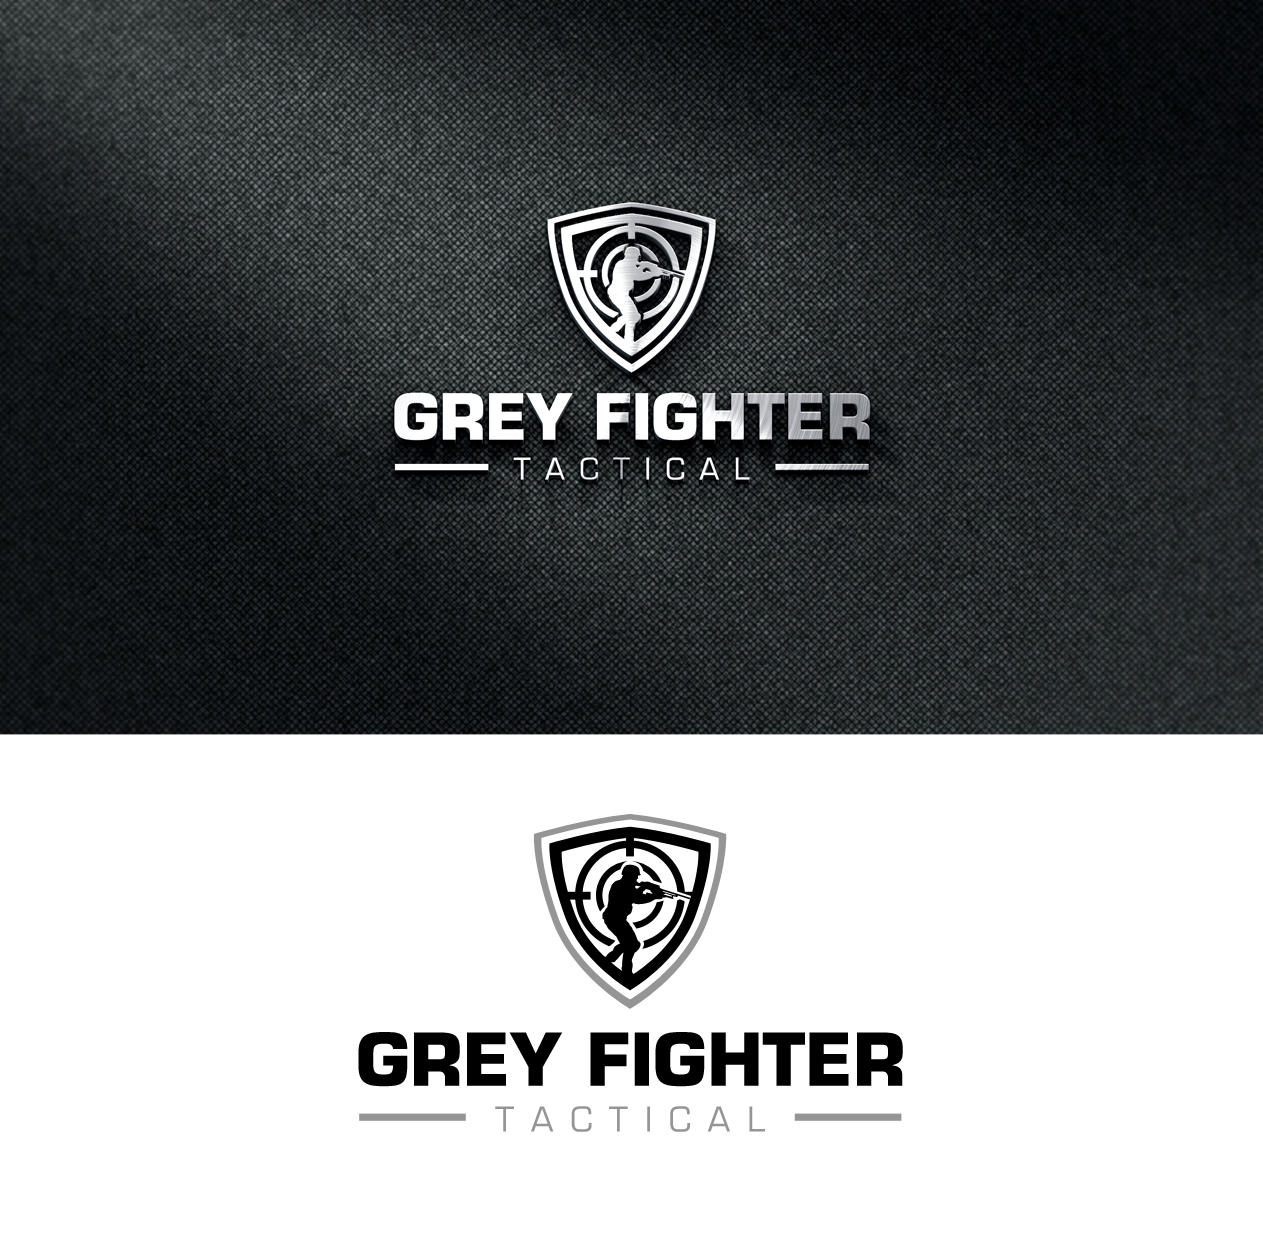 Professional Bold It Company Logo Design For Grey Fighter Tactical